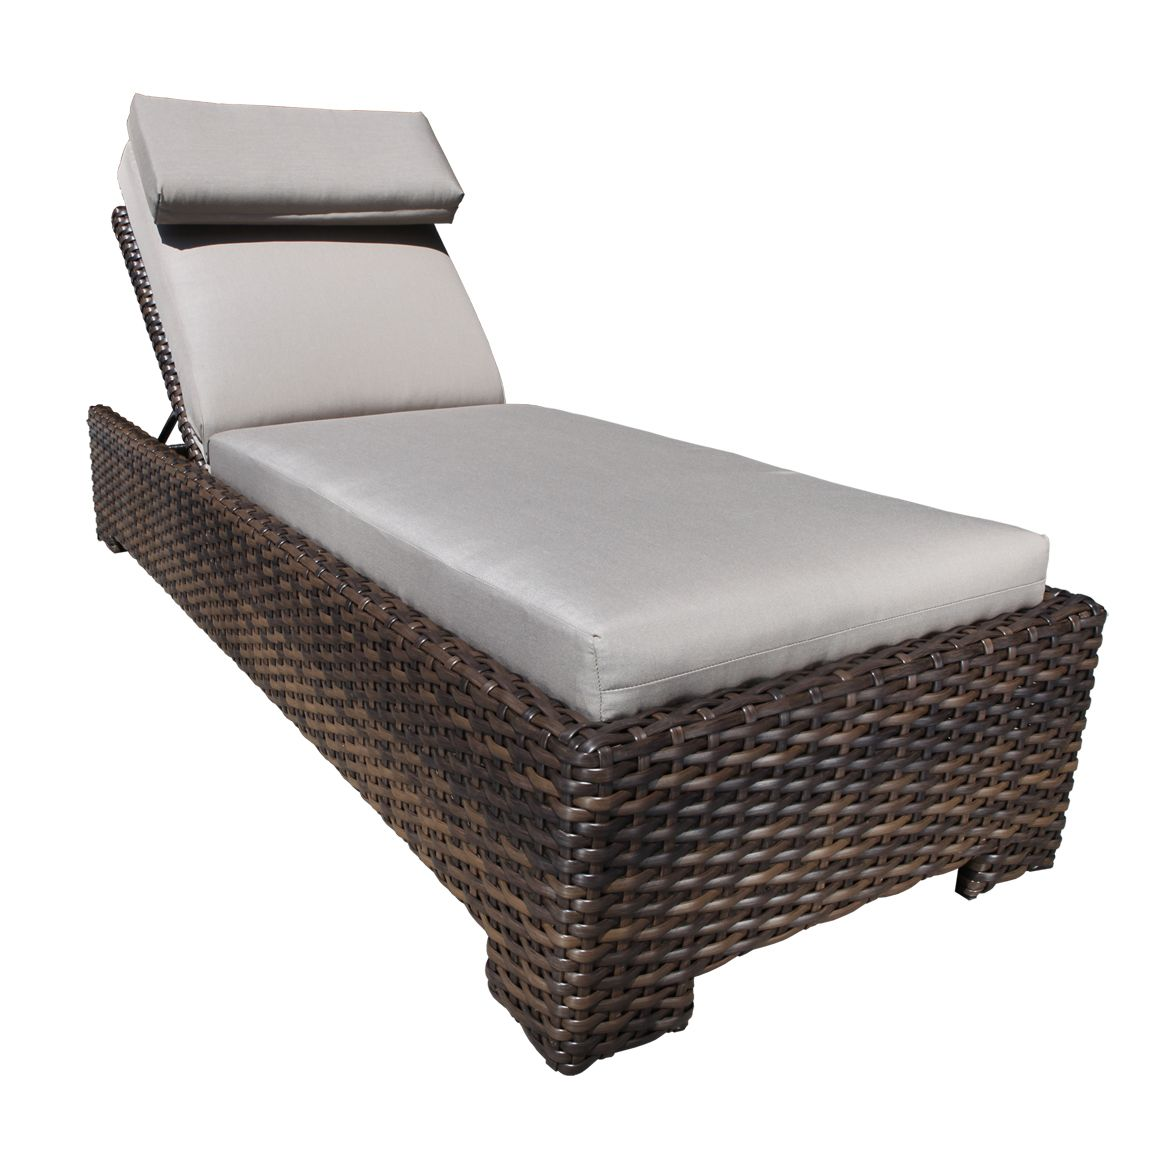 patio outdoor wicker chaise lounge with creative design | chaise